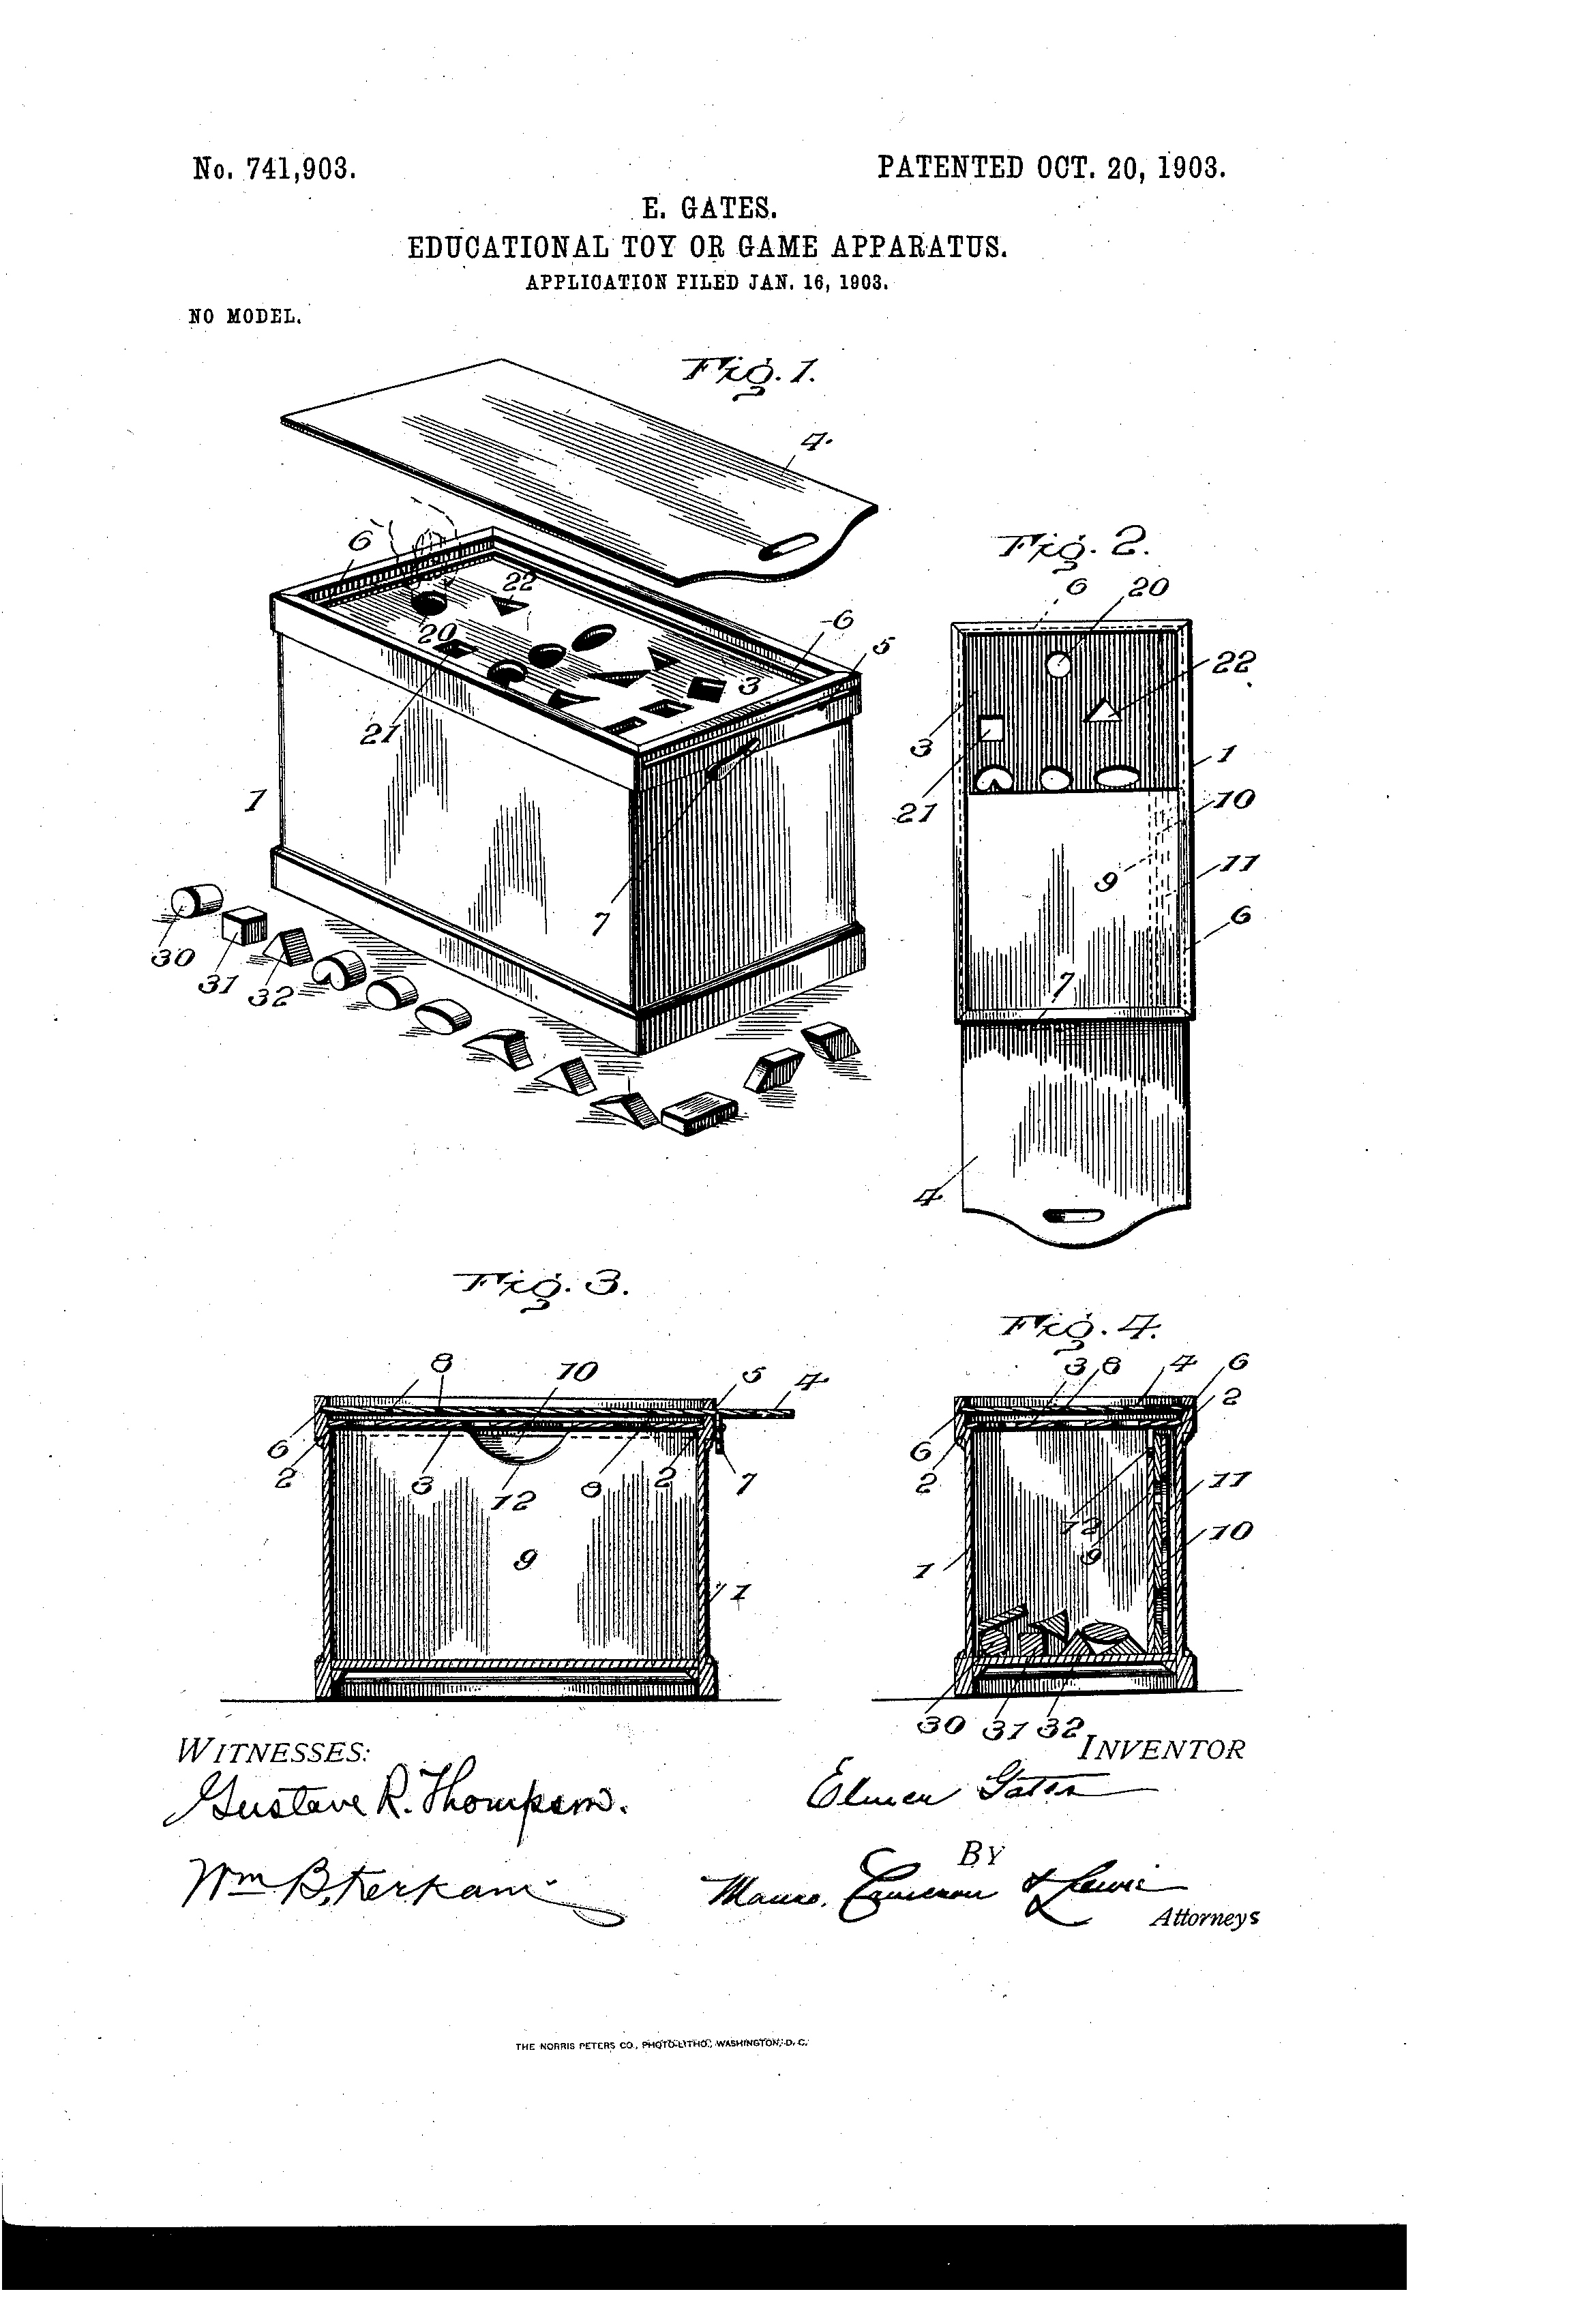 Patent drawing (US patent 741,903), educational toy or game apparatus, October 20, 1903.